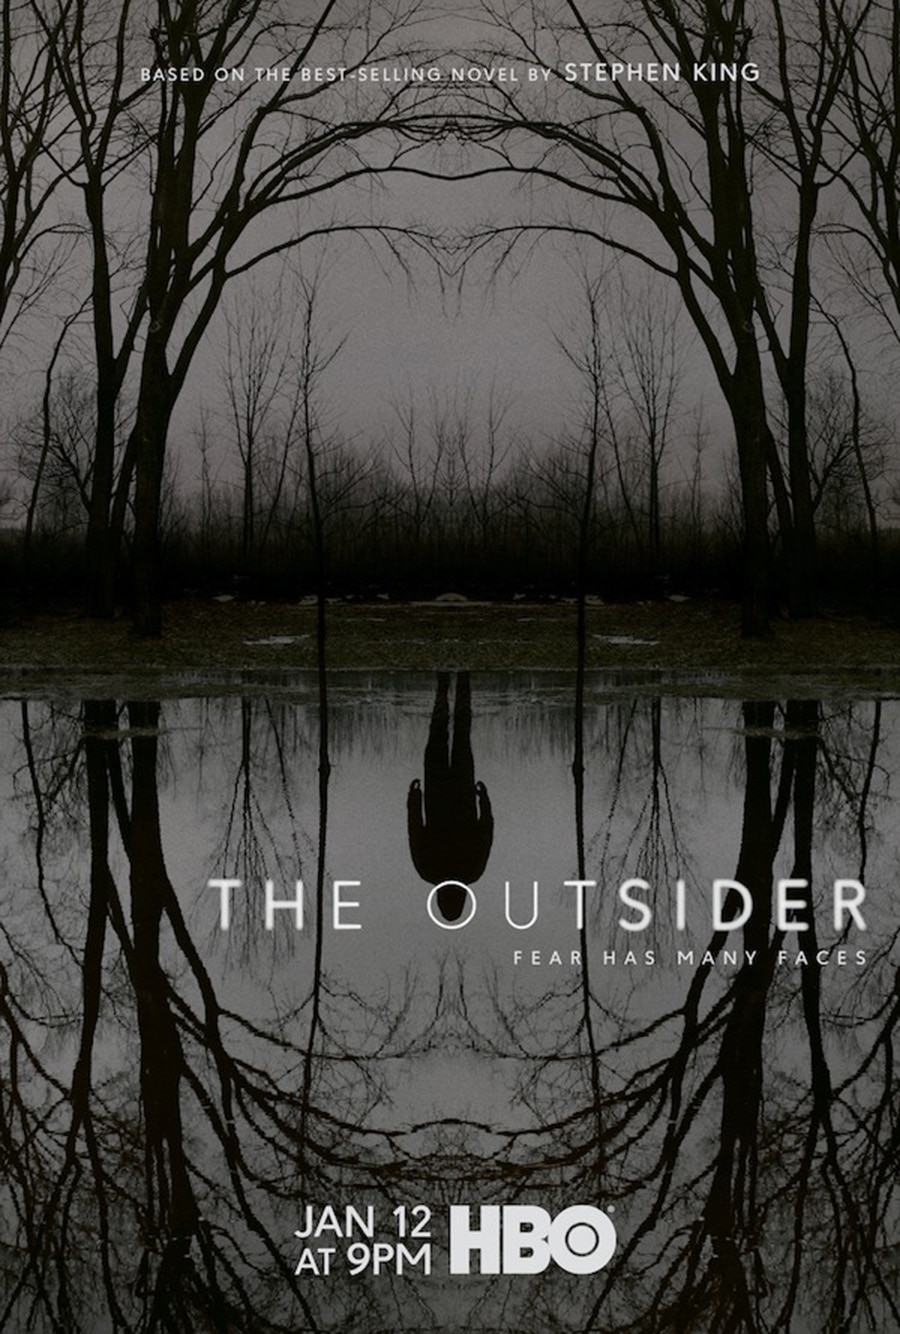 The Outsider Poster DC 1 - Showrunner Already Working on THE OUTSIDER Season 2